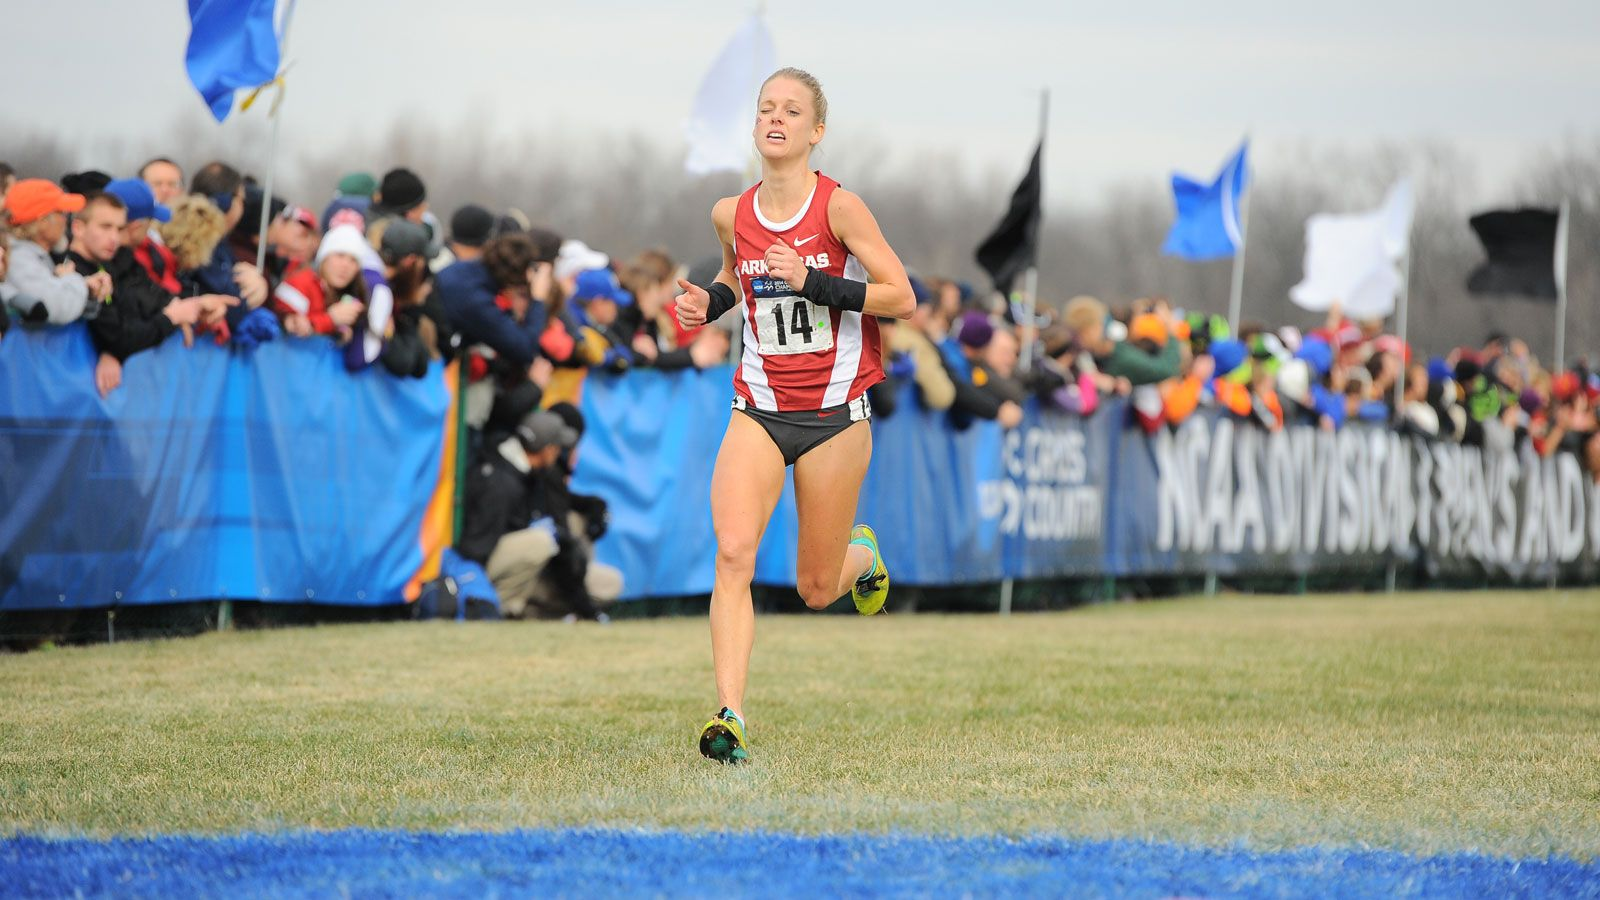 SEC runners earn All-America honors at NCAAs